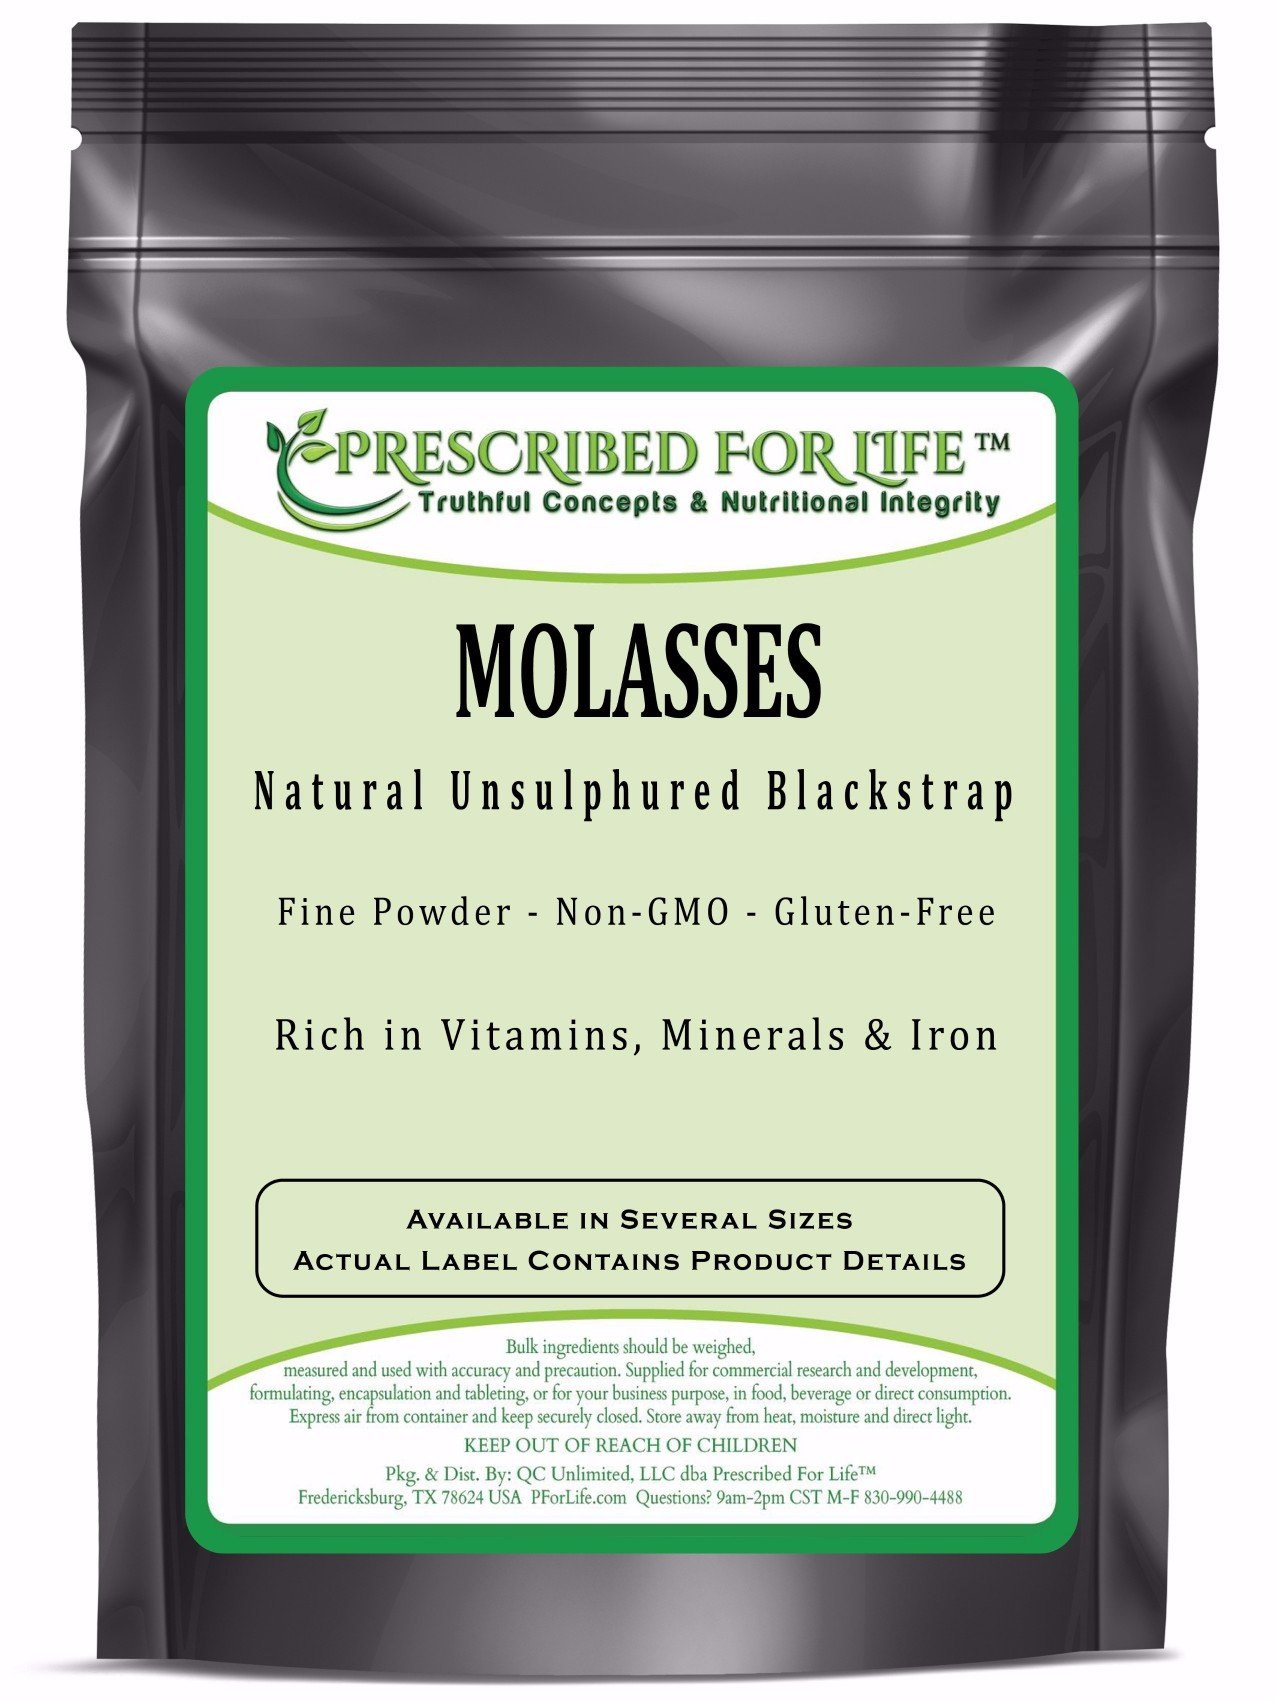 Molasses - Natural Non-GMO Unsulphured Blackstrap Molasses Powder, 12 oz